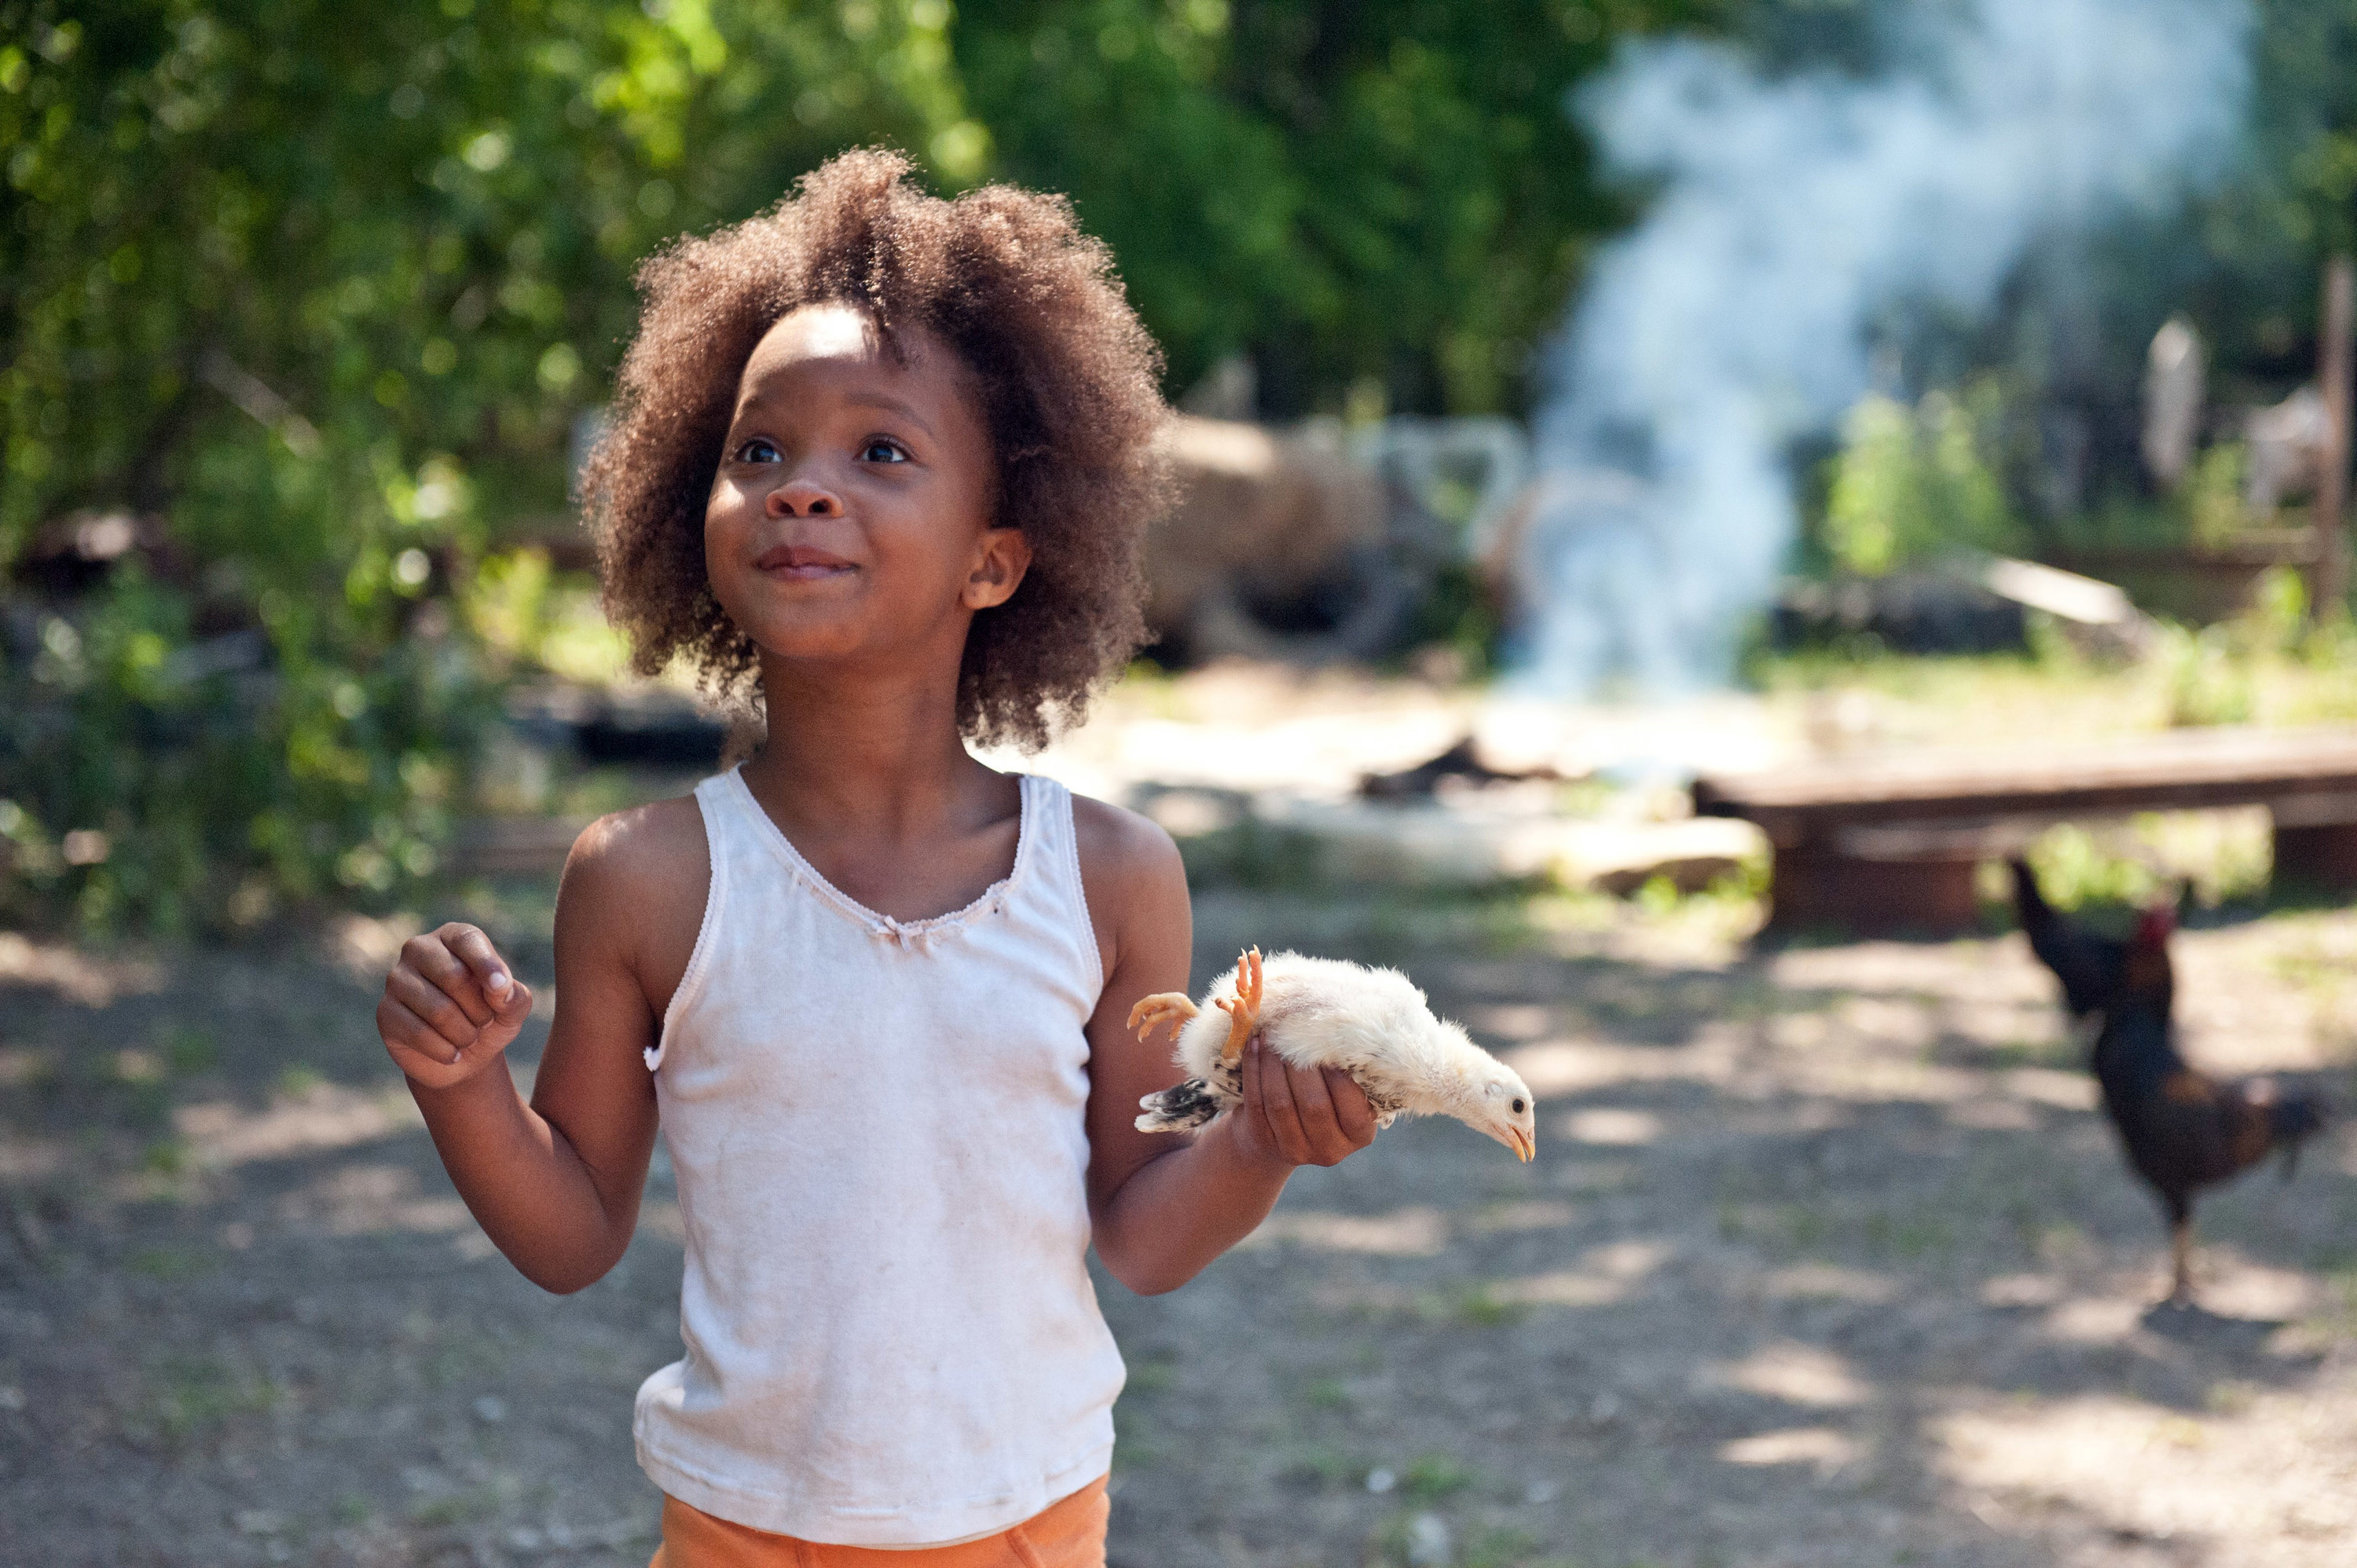 Quvenzhané as Hushpuppy in Beasts of the Southern Wild